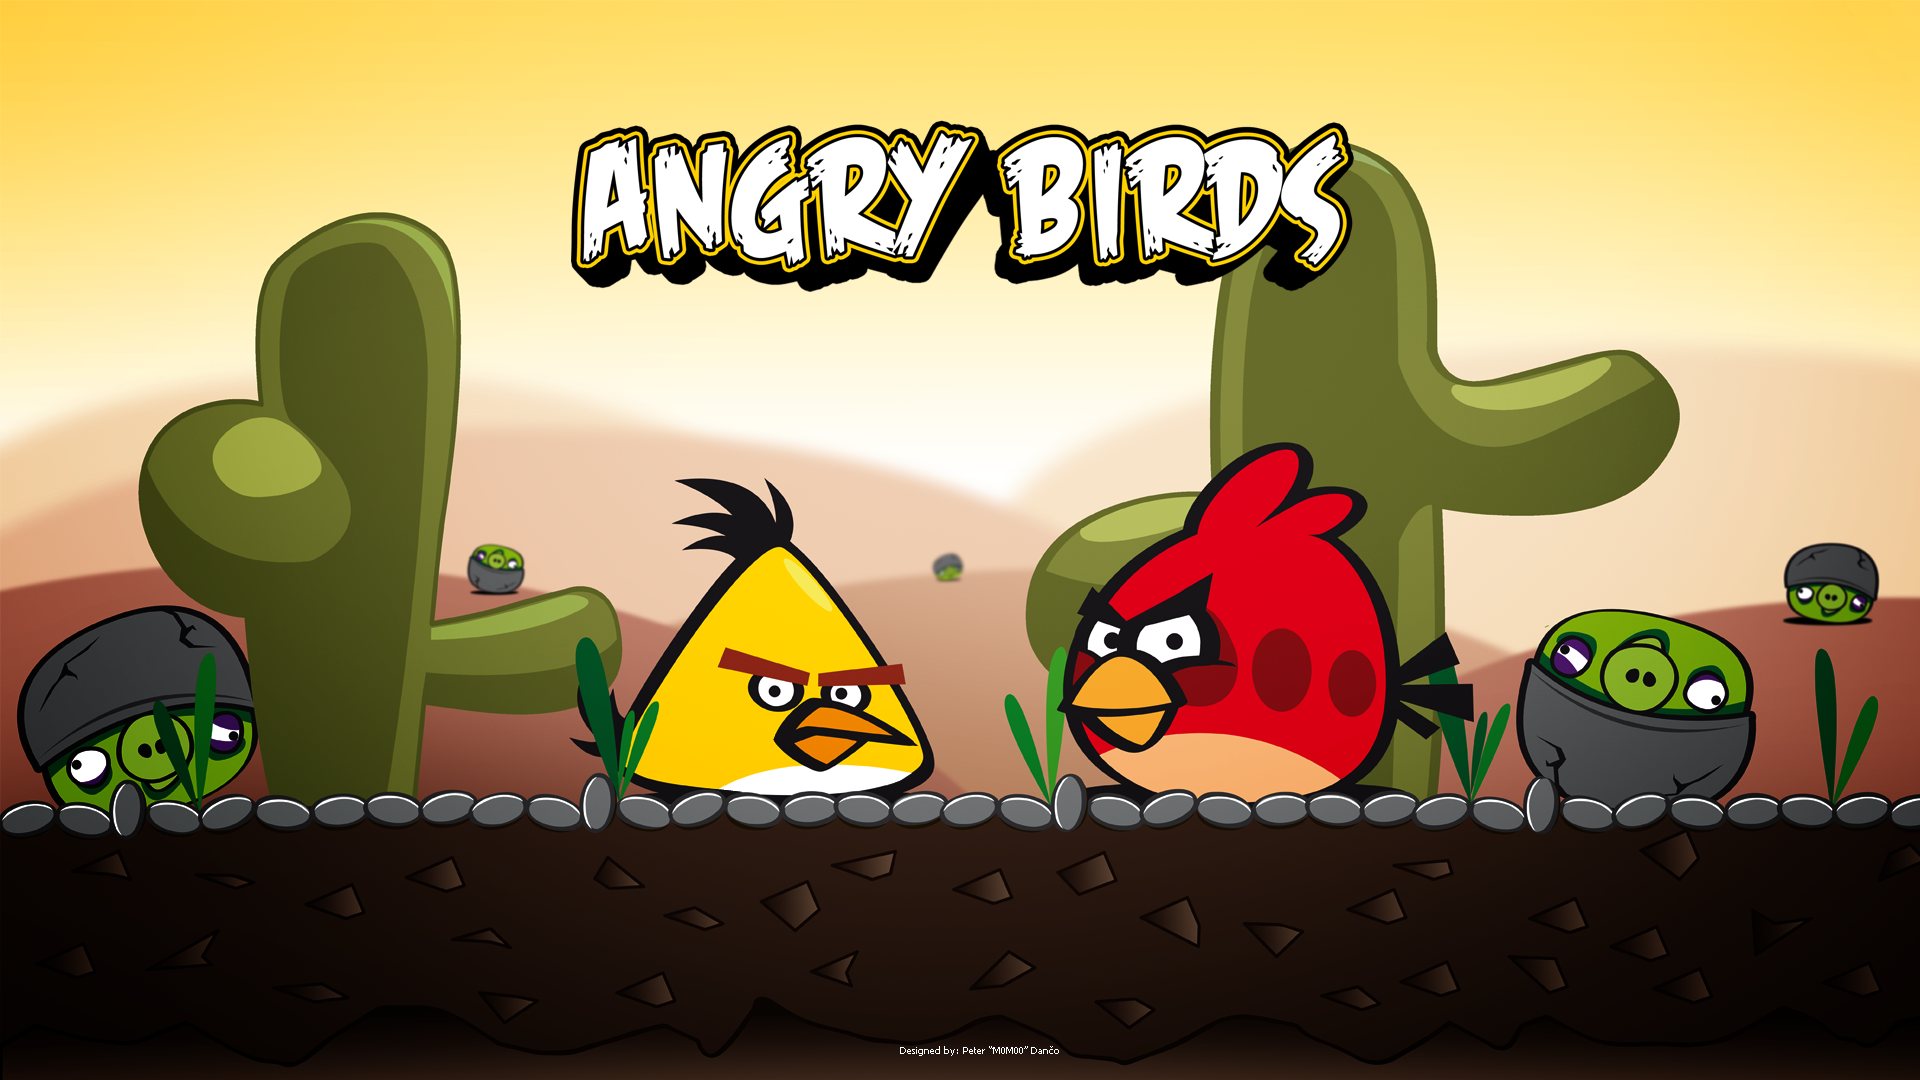 Angry birds wallpaper game angry birds wallpaper angry birds wallpaper voltagebd Gallery